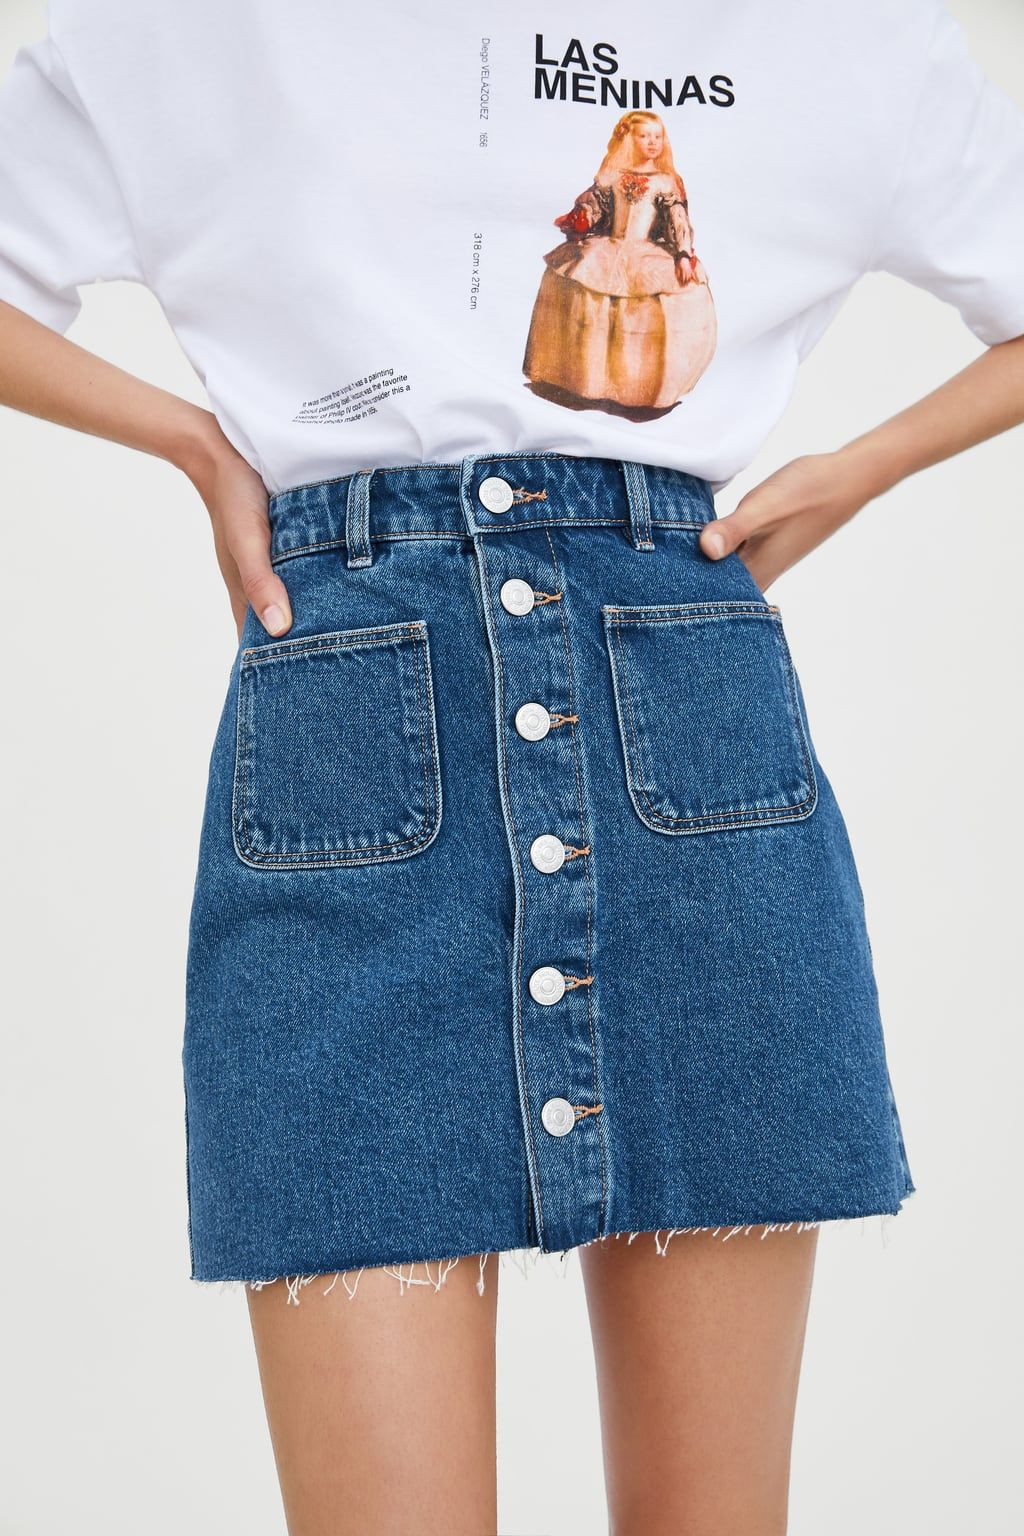 White and blue style outfit with denim skirt, jean short, miniskirt